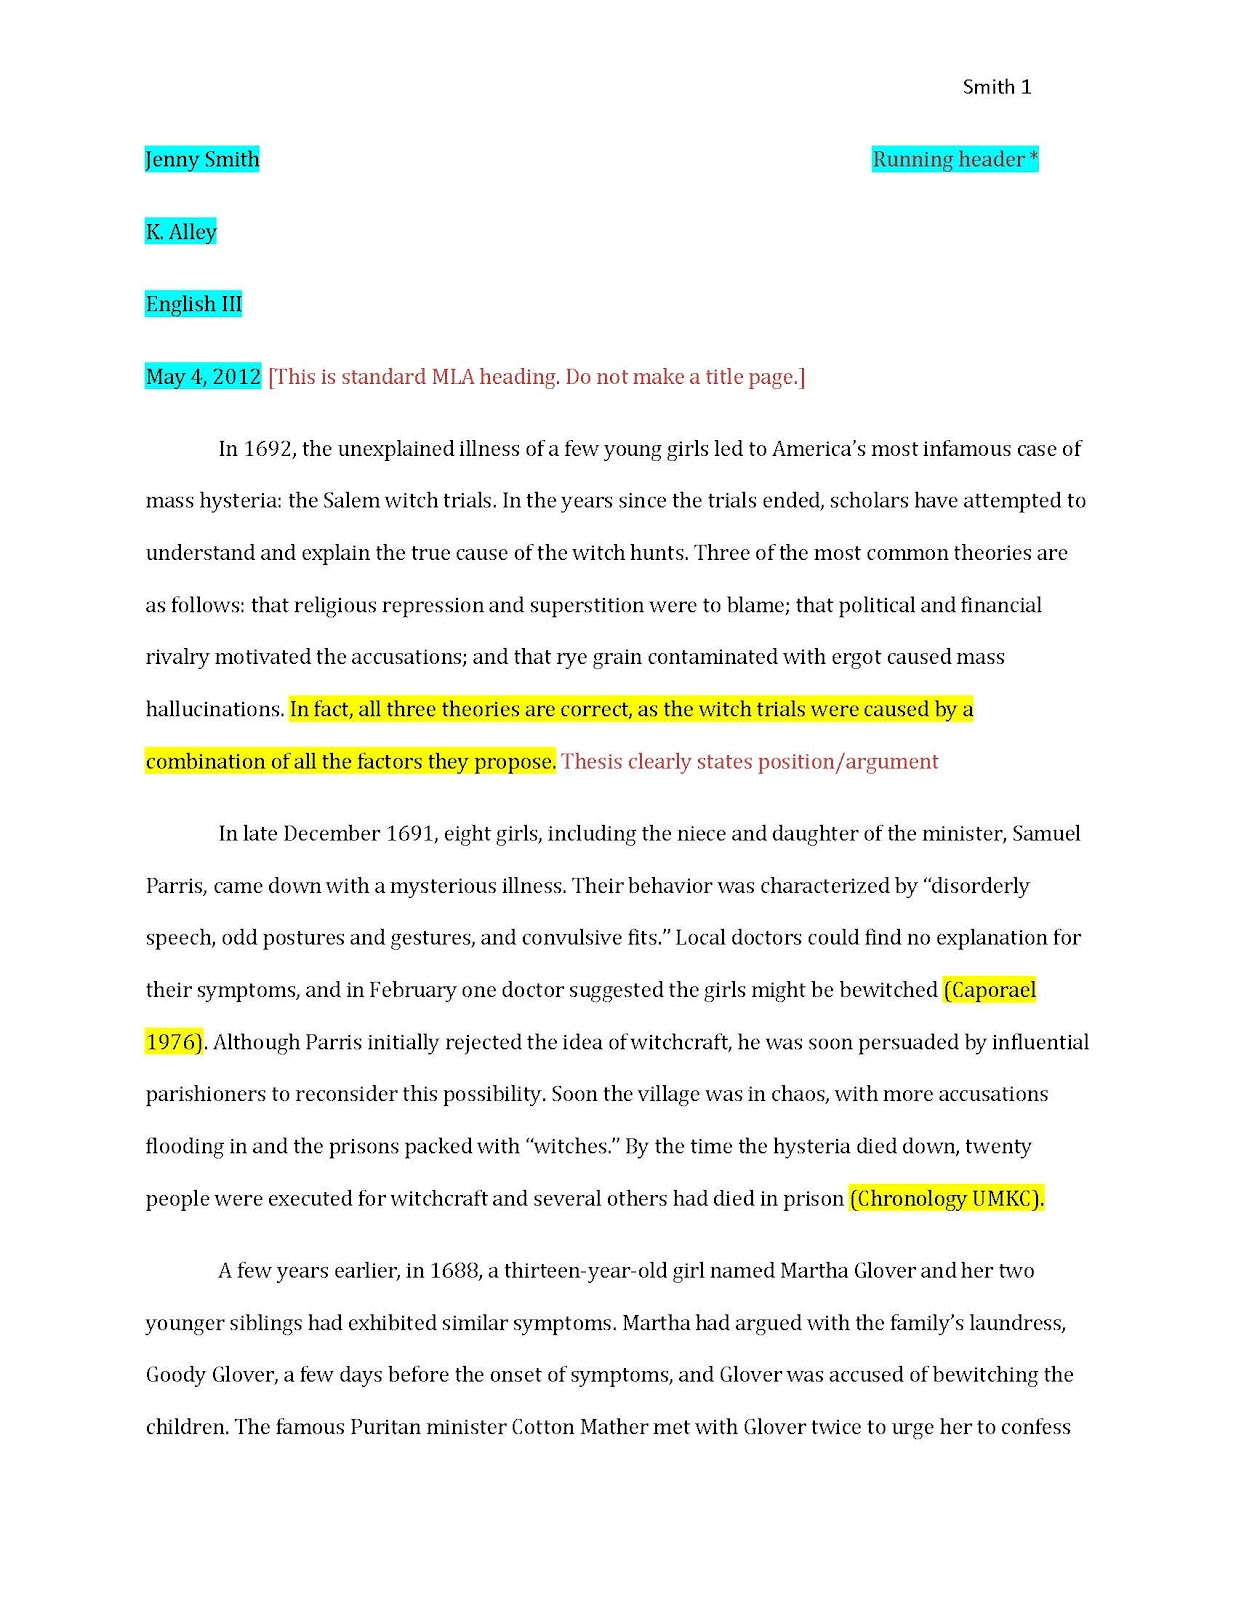 006 Examplepaper Page 1 Research Paper Citations Amazing For How To Make Bibliography Do Write